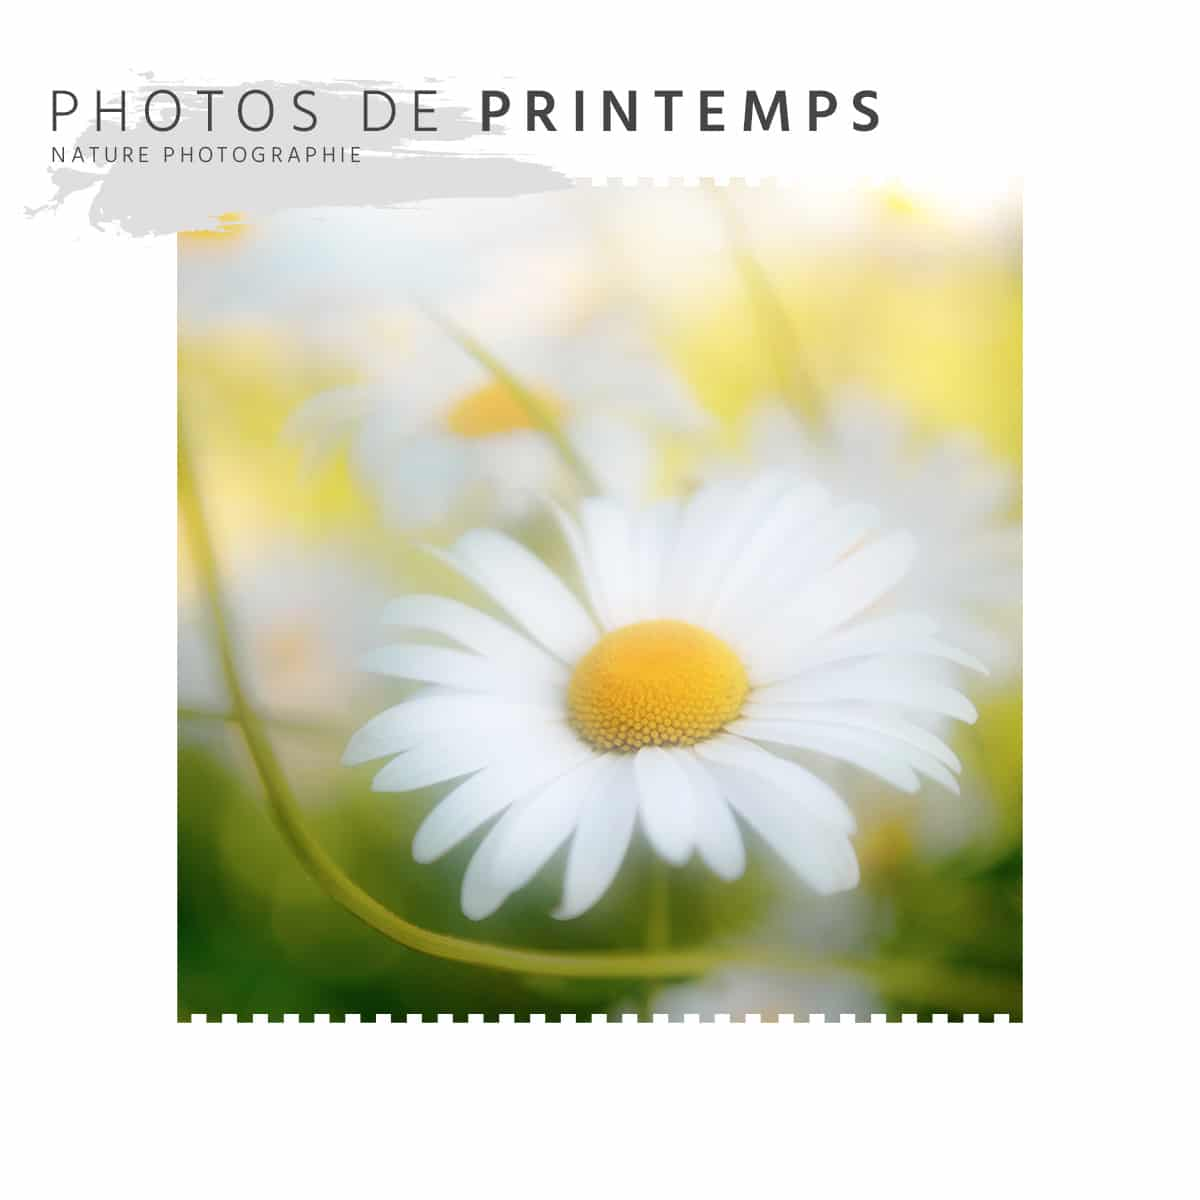 Photos de Printemps